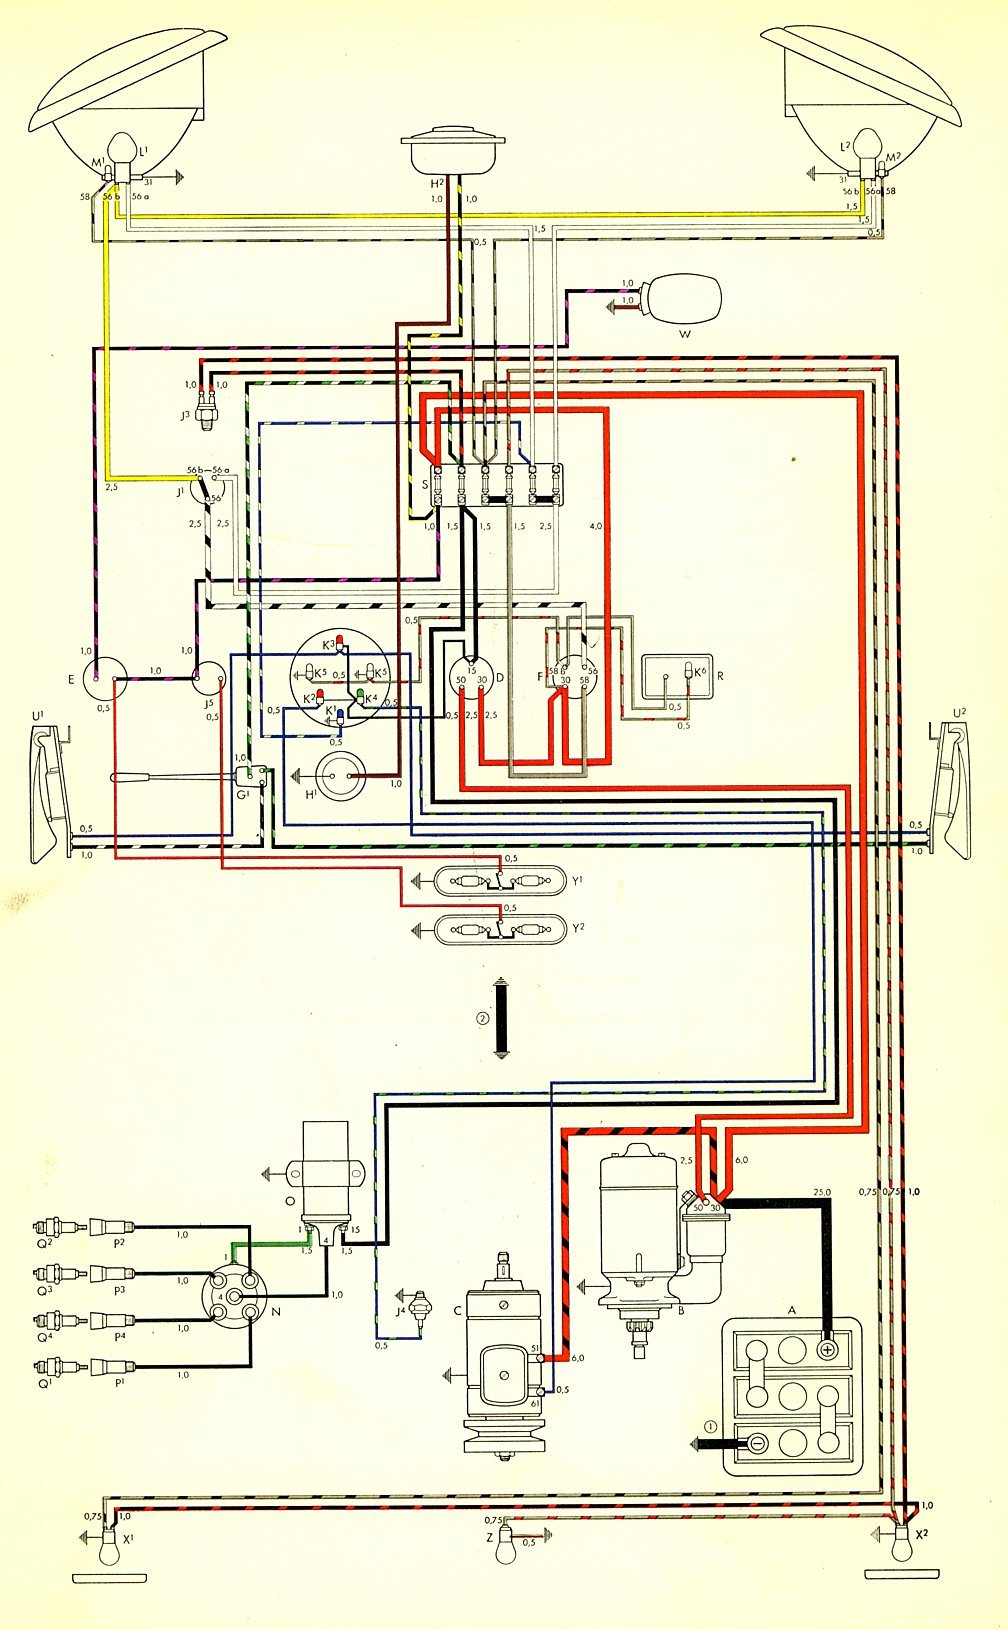 bus_59 vw bus wiring diagram 1965 vw bus wiring diagram \u2022 wiring diagrams 1965 vw beetle wiring diagram at mifinder.co